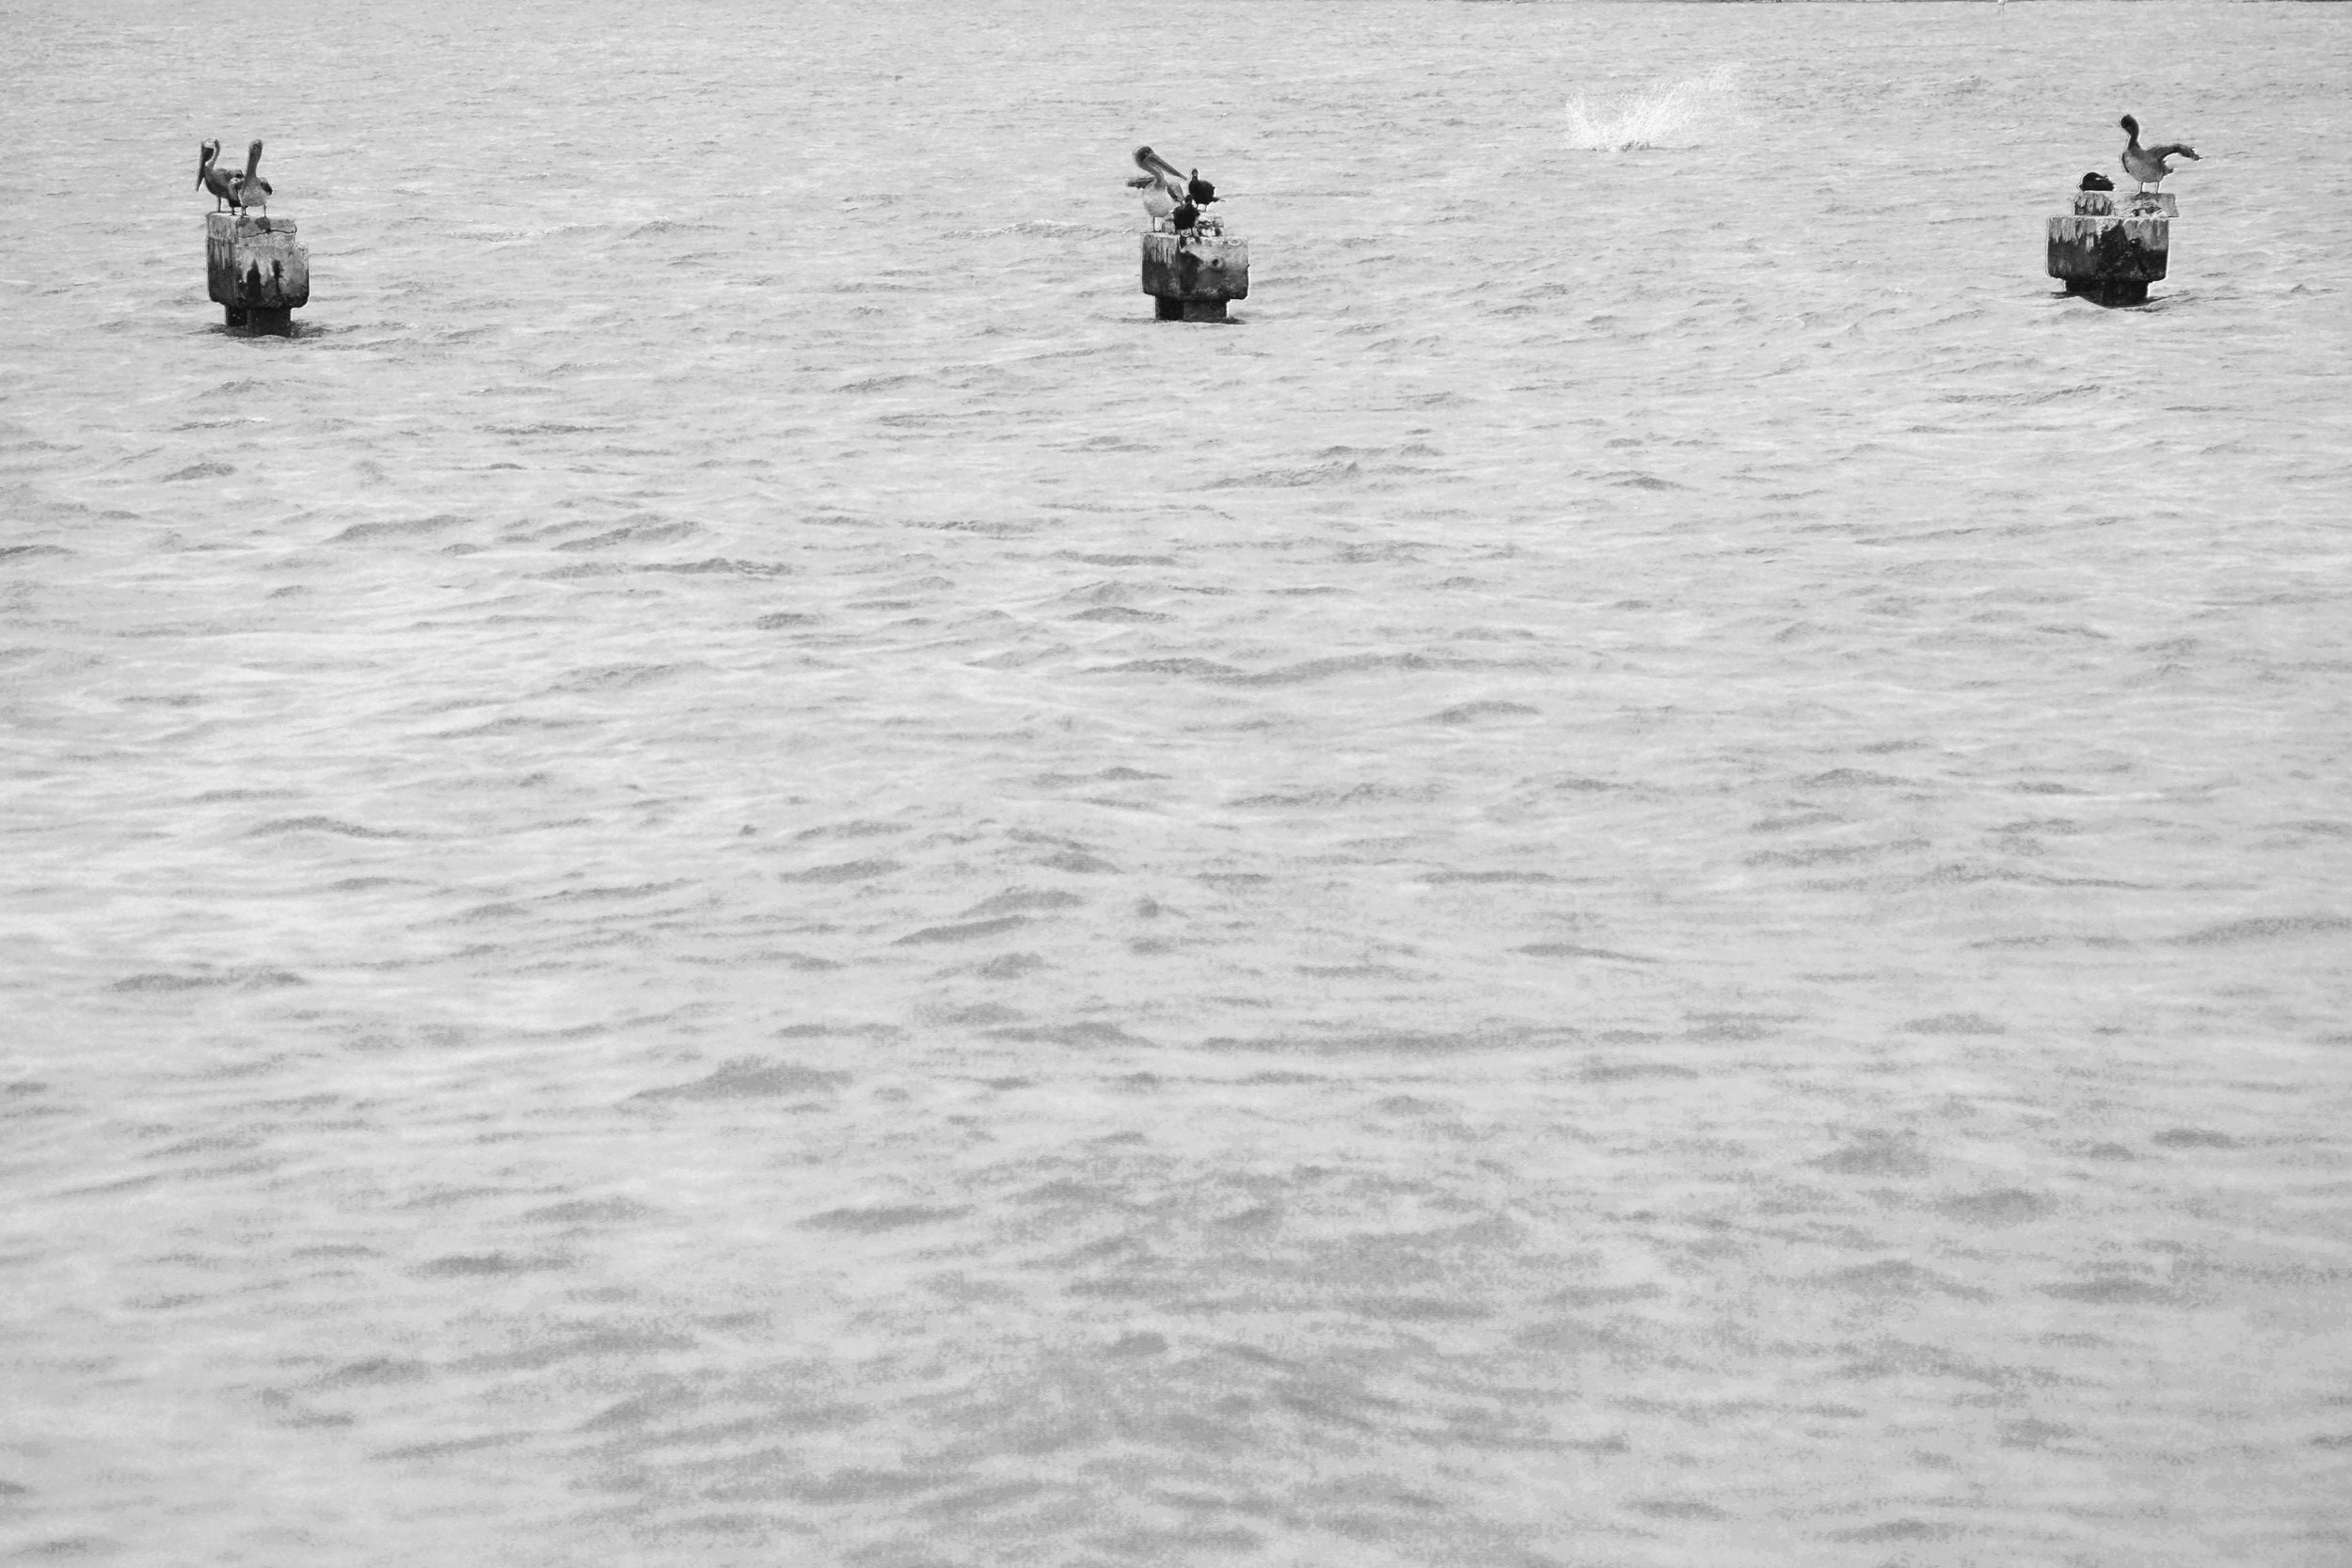 Black and White Duck Photography